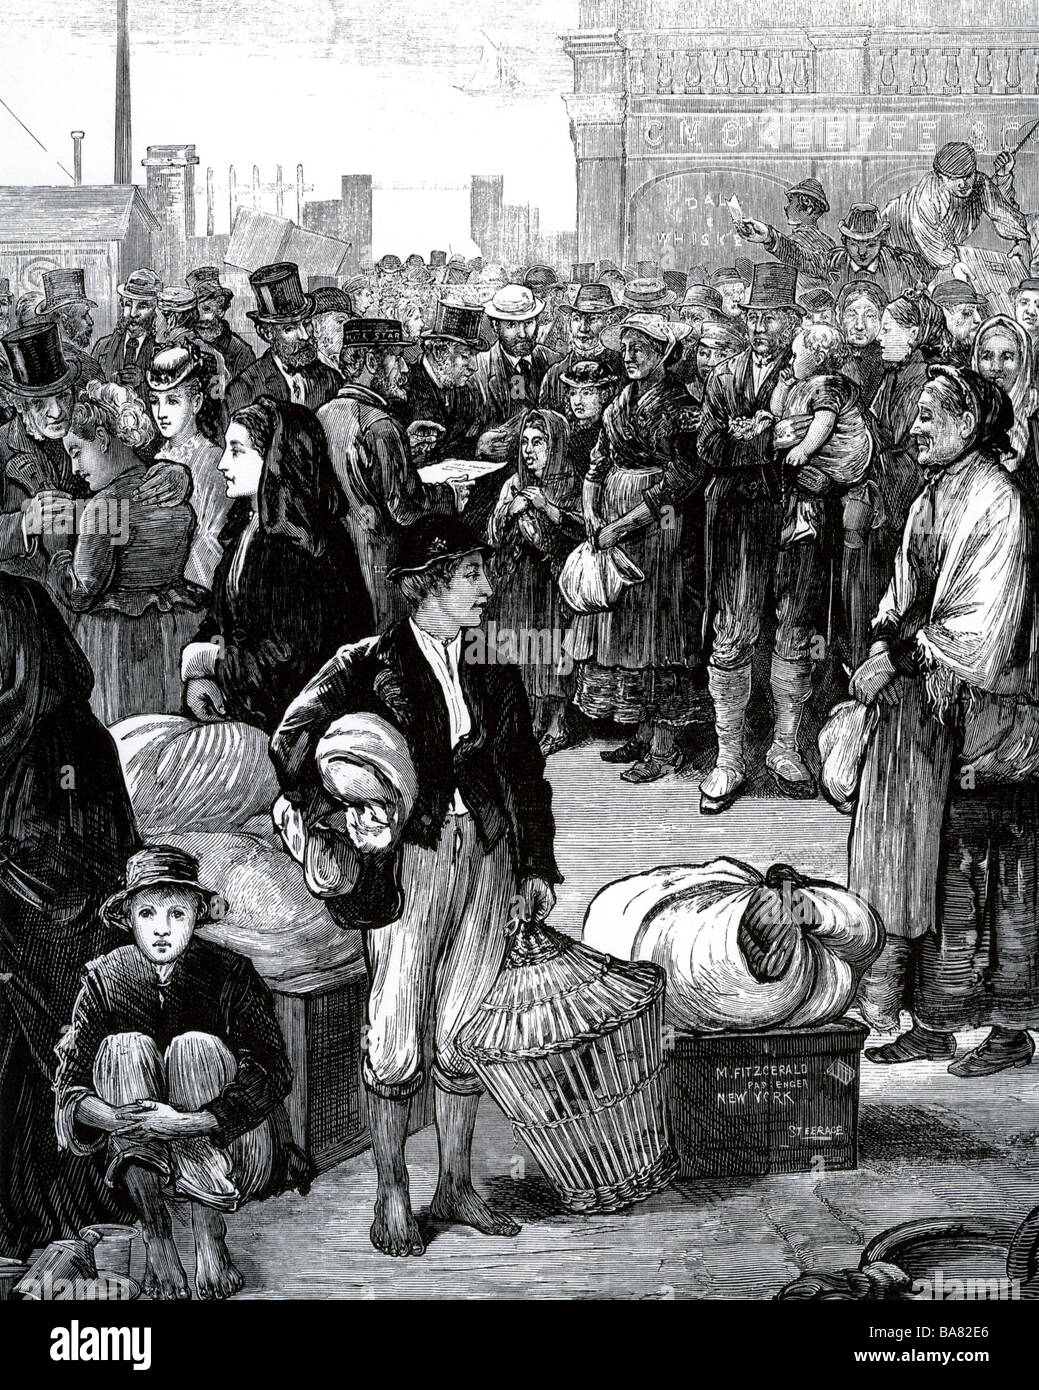 immigration in the 19th century essay Topic: the immigration of east indian indentured workers to the caribbean in the 19th century could be regarded as a new system of slavery slavery was the initial labour system used by.